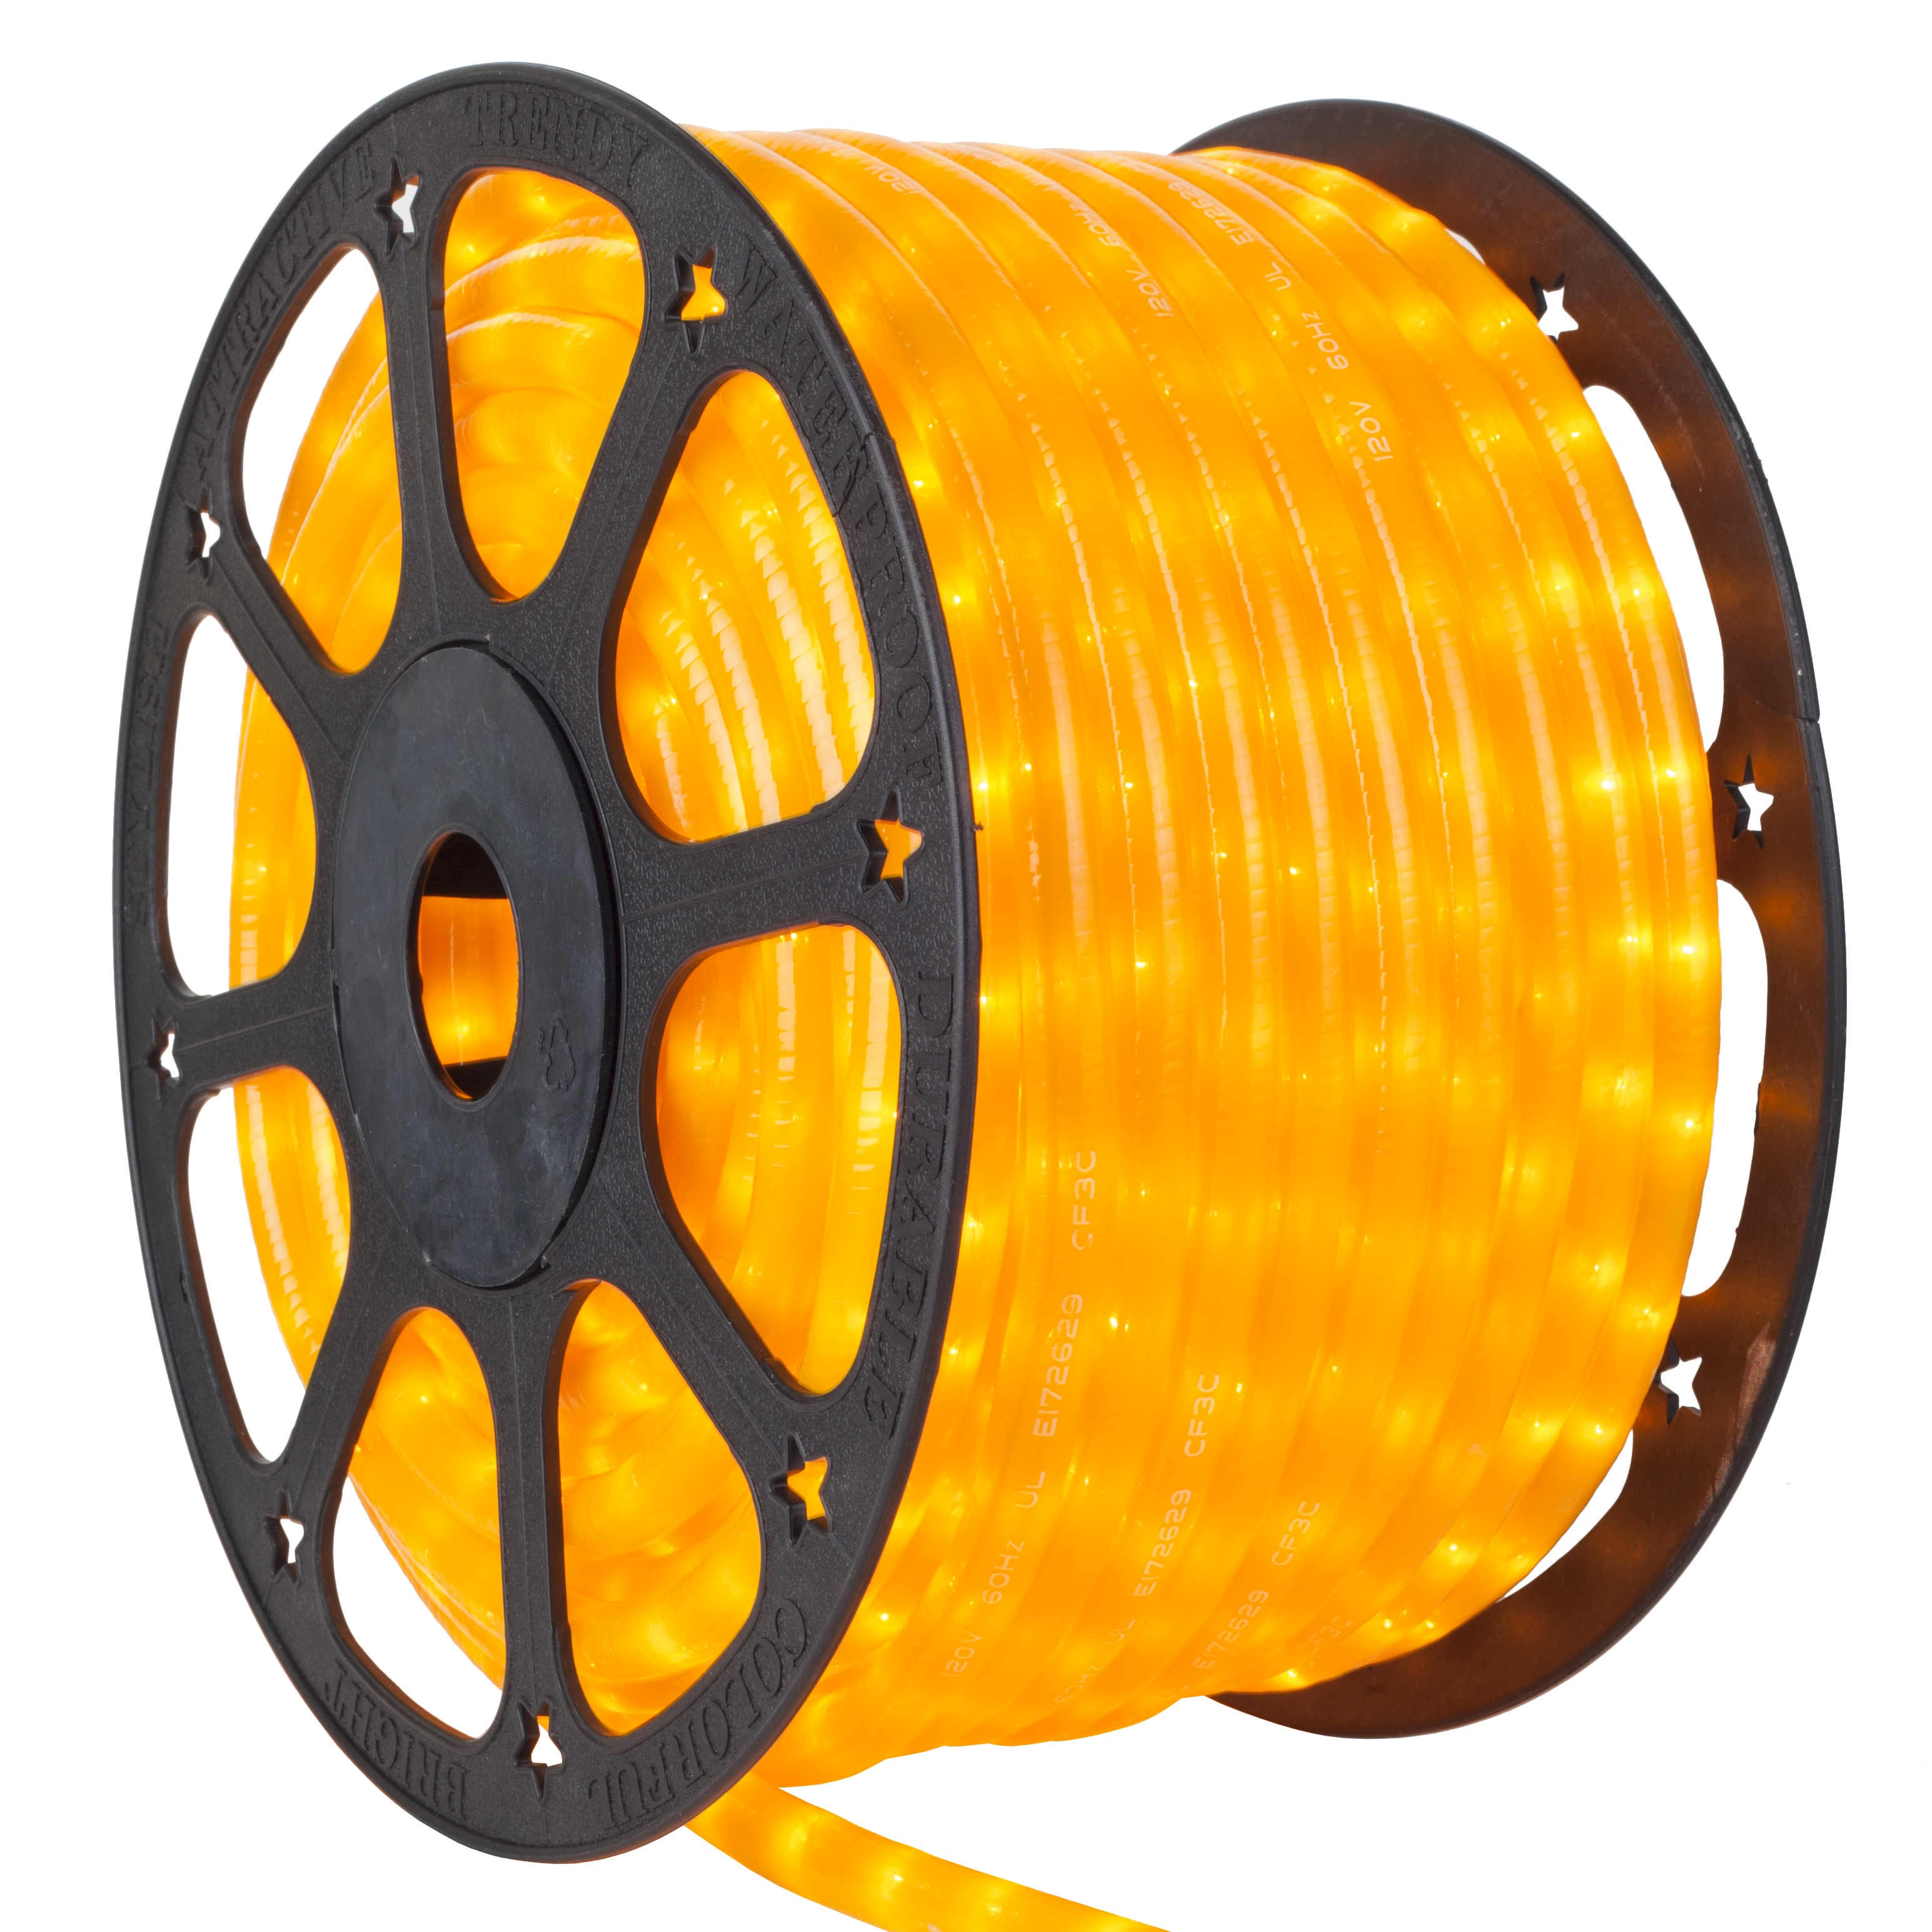 Rope Light 150 Pearl Yellow Rope Light Commercial Spool